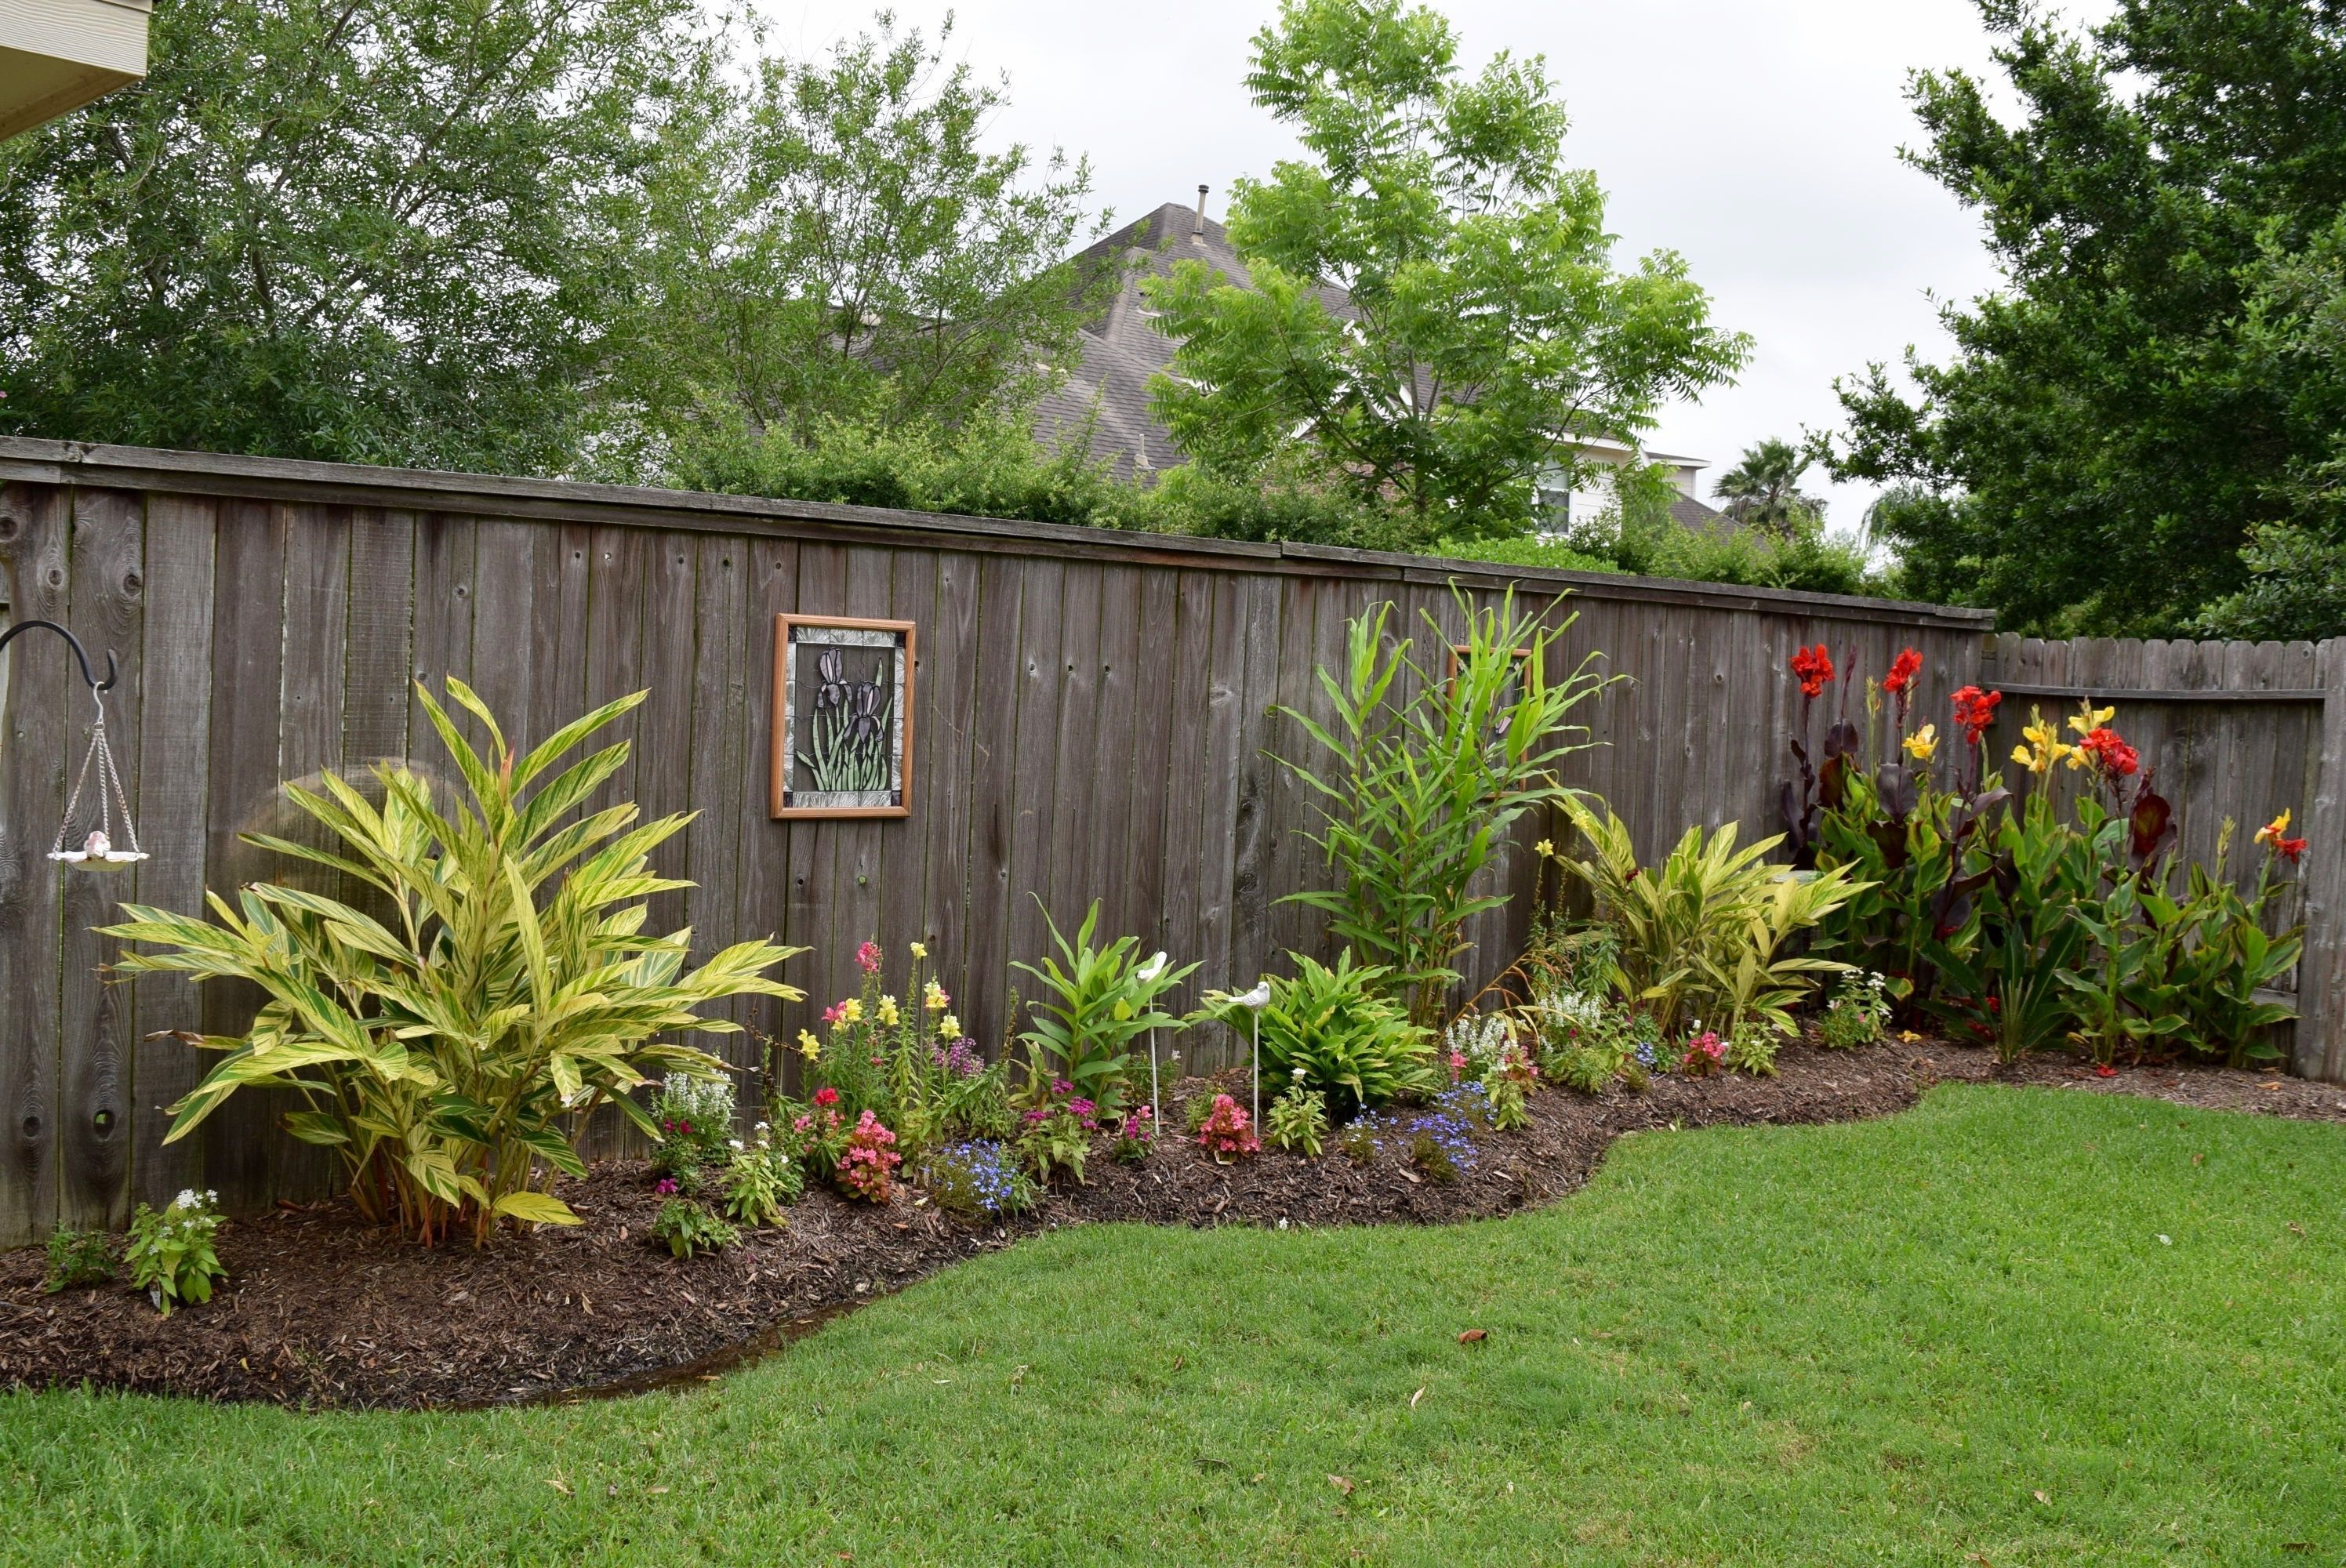 Awe Inspiring Backyard Landscaping Ideas Along Fence Now Some Individuals Won T Ever Car Backyard Landscaping Designs Landscaping Along Fence Backyard Fences Backyard landscaping ideas along fence